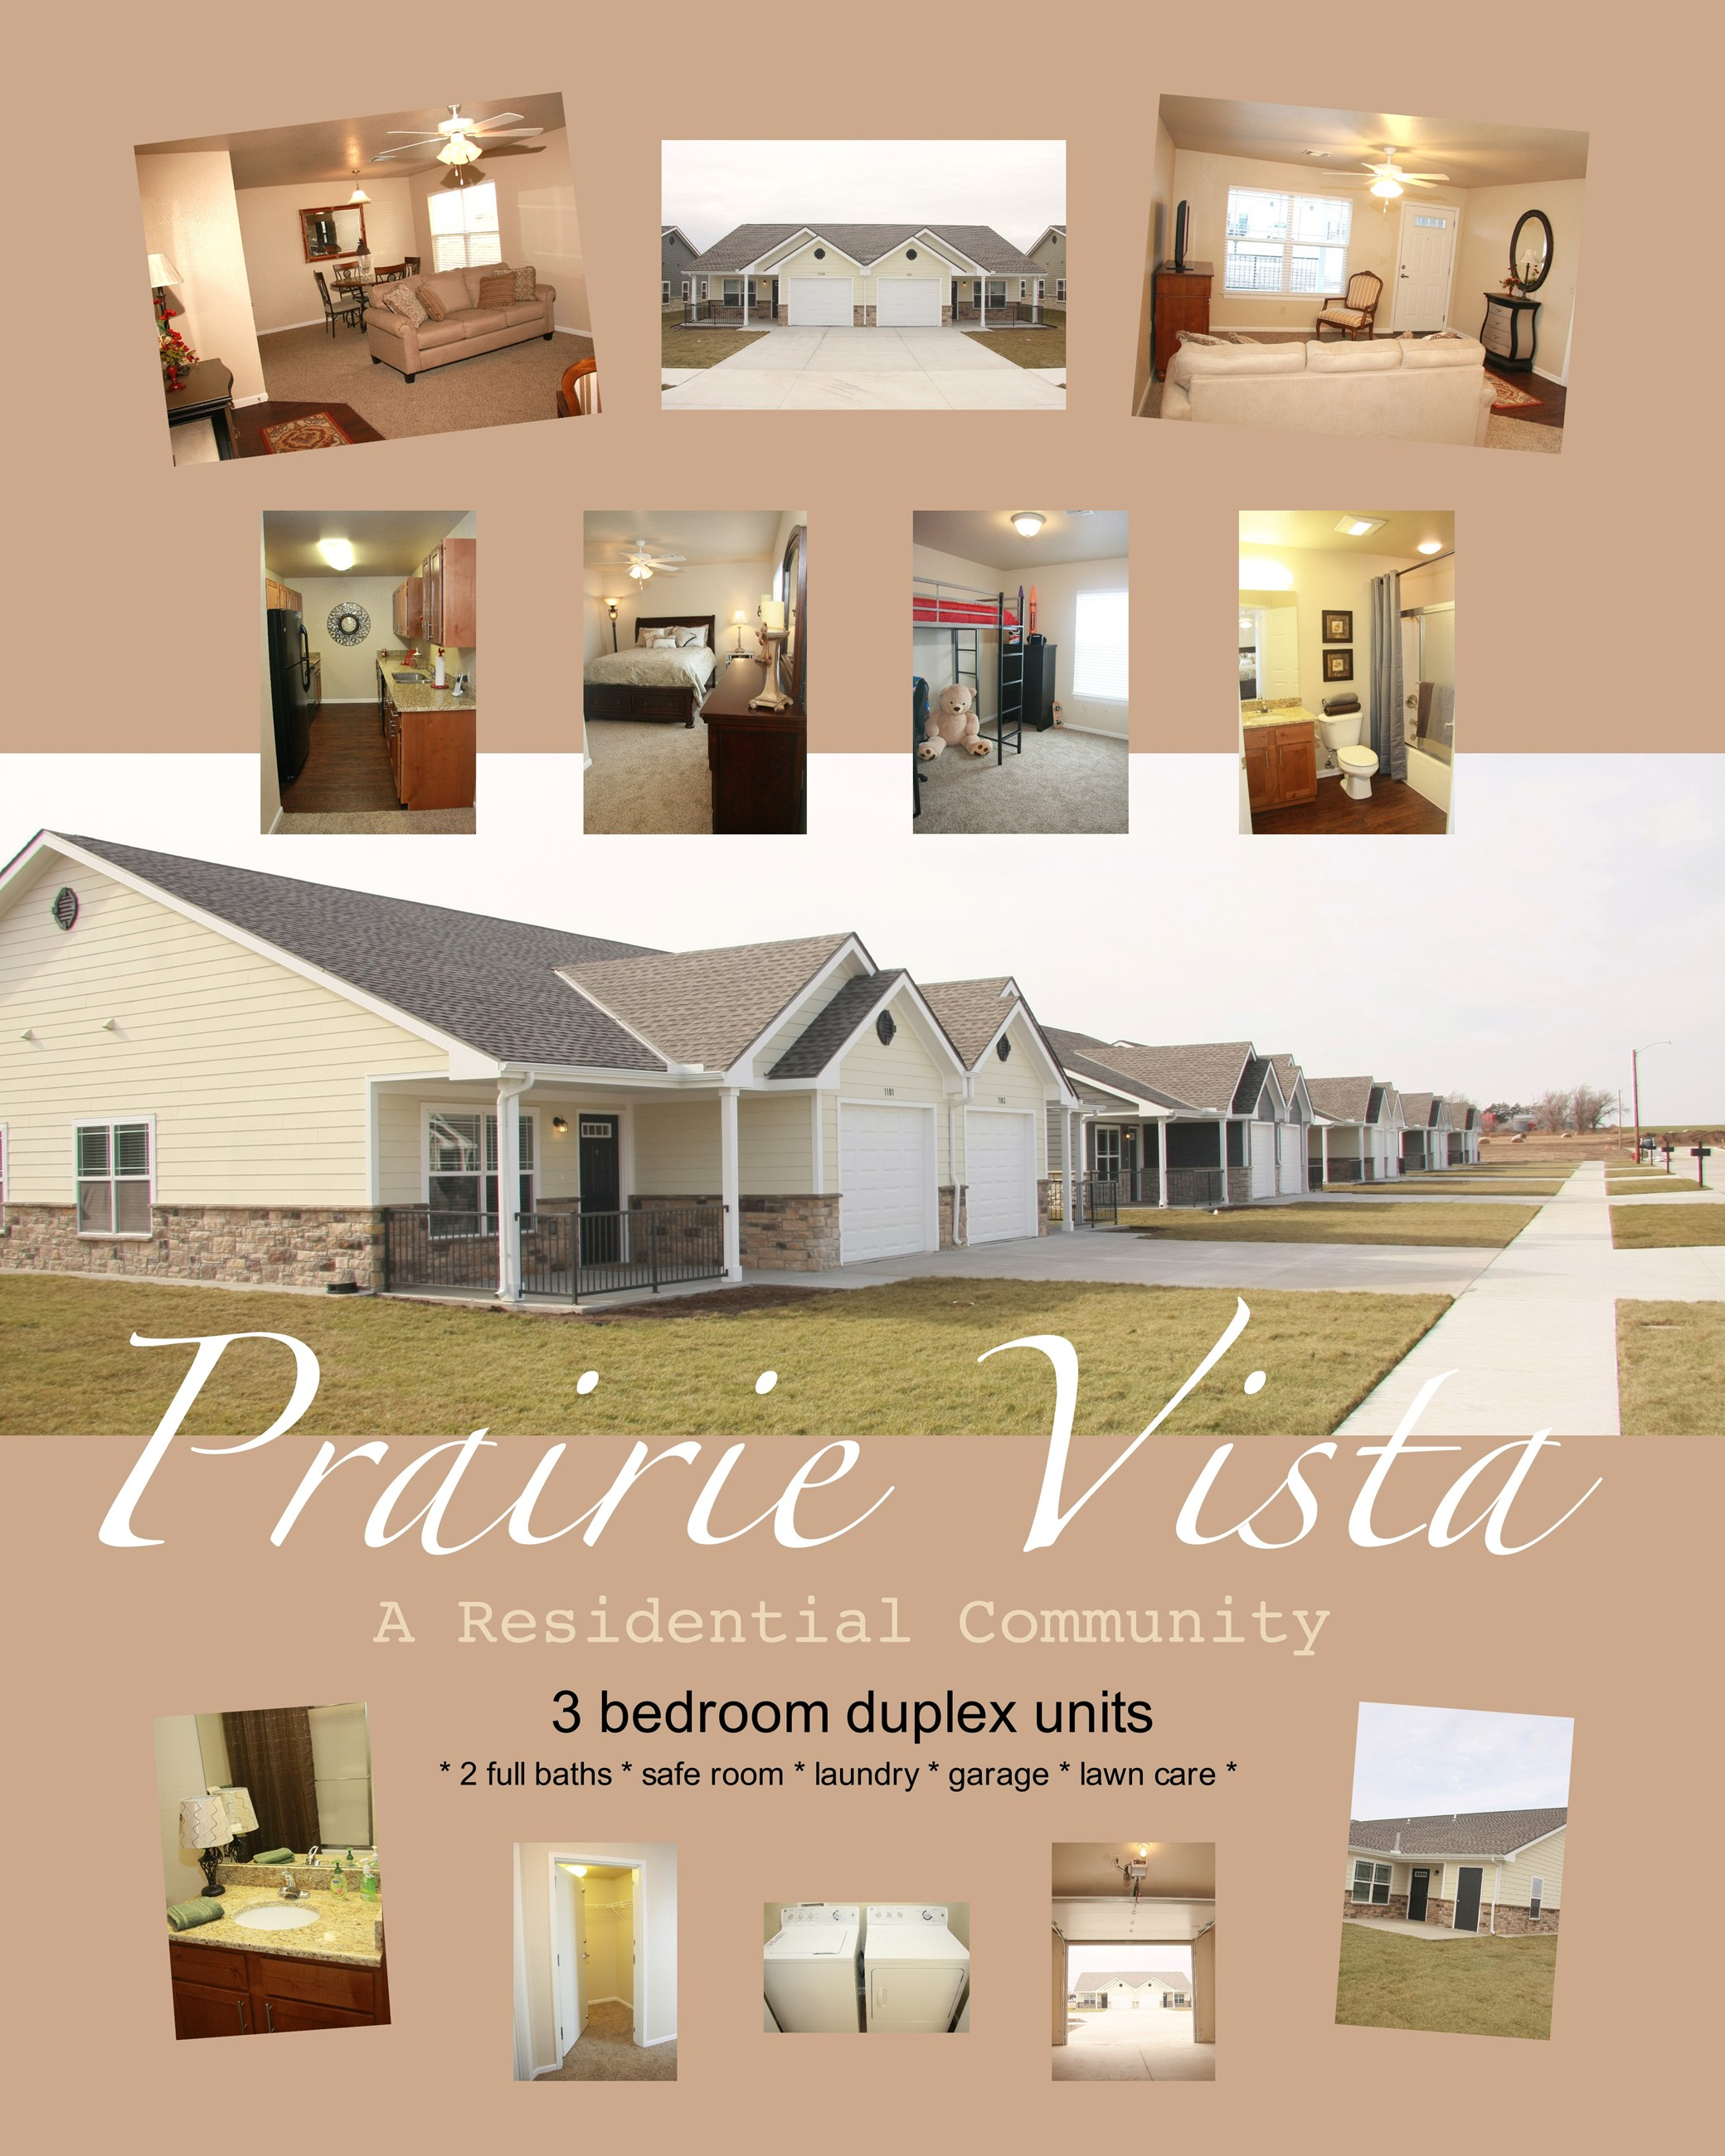 A collage of images of the Prairie Vista community of homes.